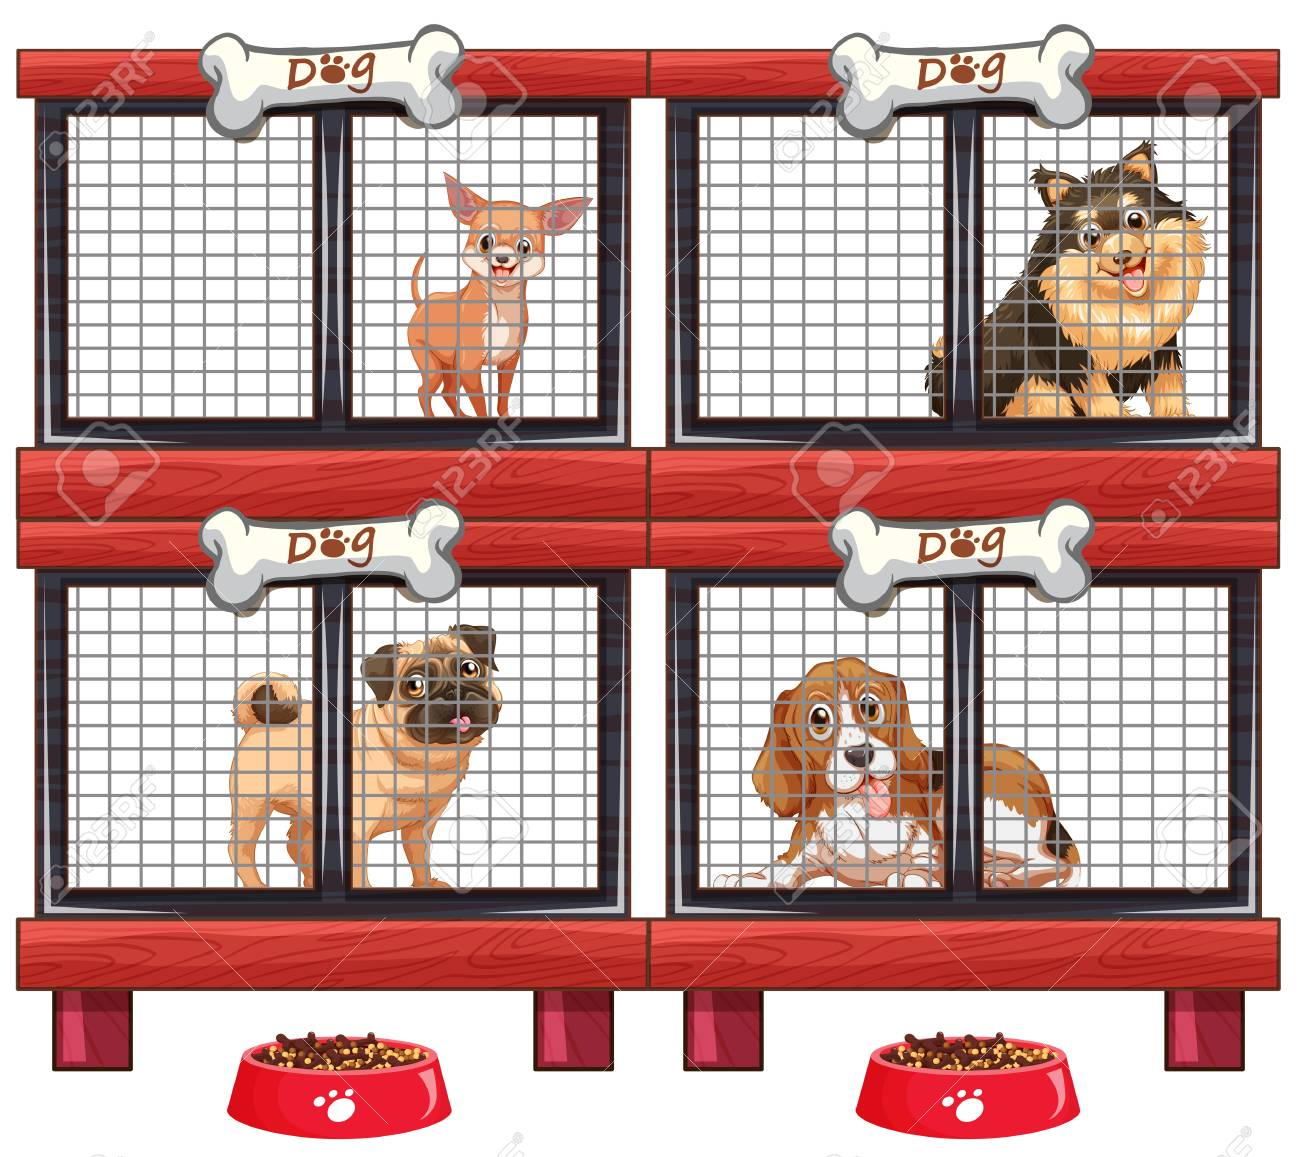 Four Types Of Dogs In Cage Illustration Royalty Free Cliparts Vectors And Stock Illustration Image 76078859